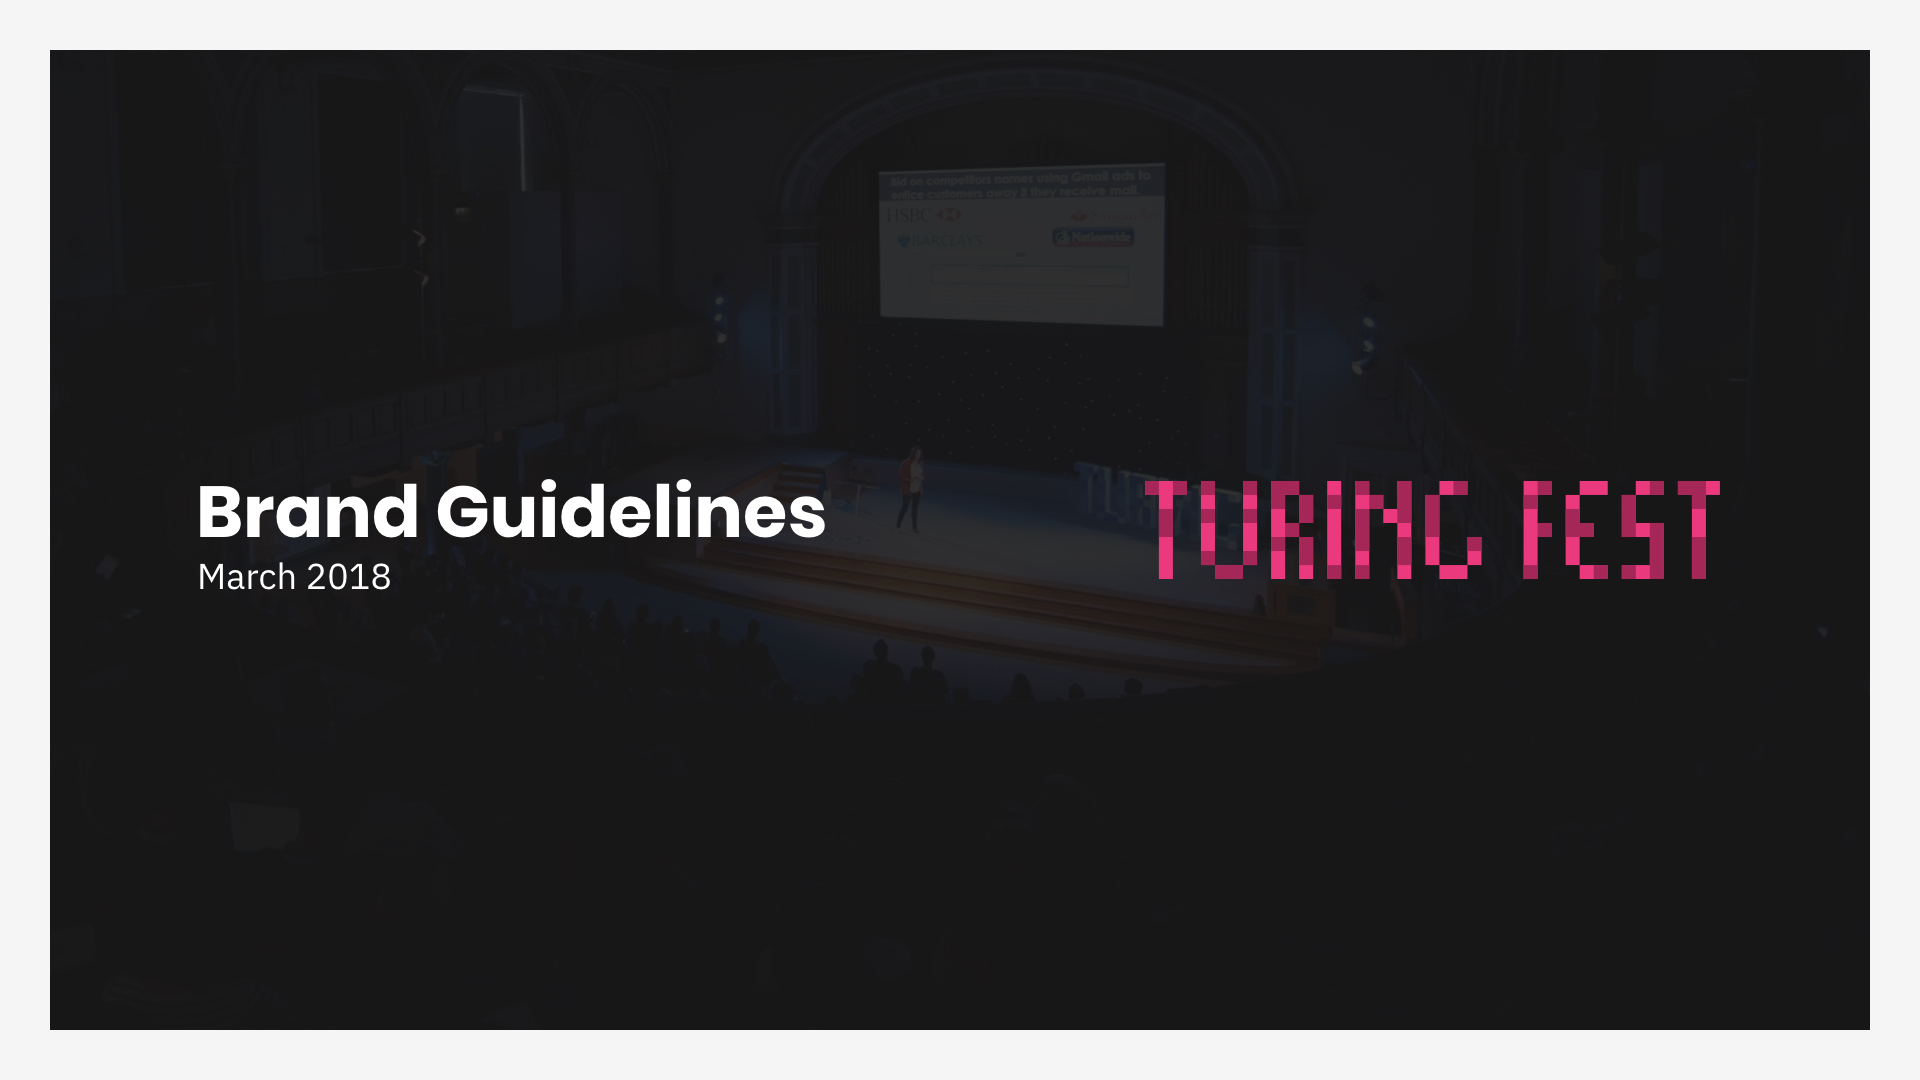 TF brand guidelines 2018-03-28.001.jpeg